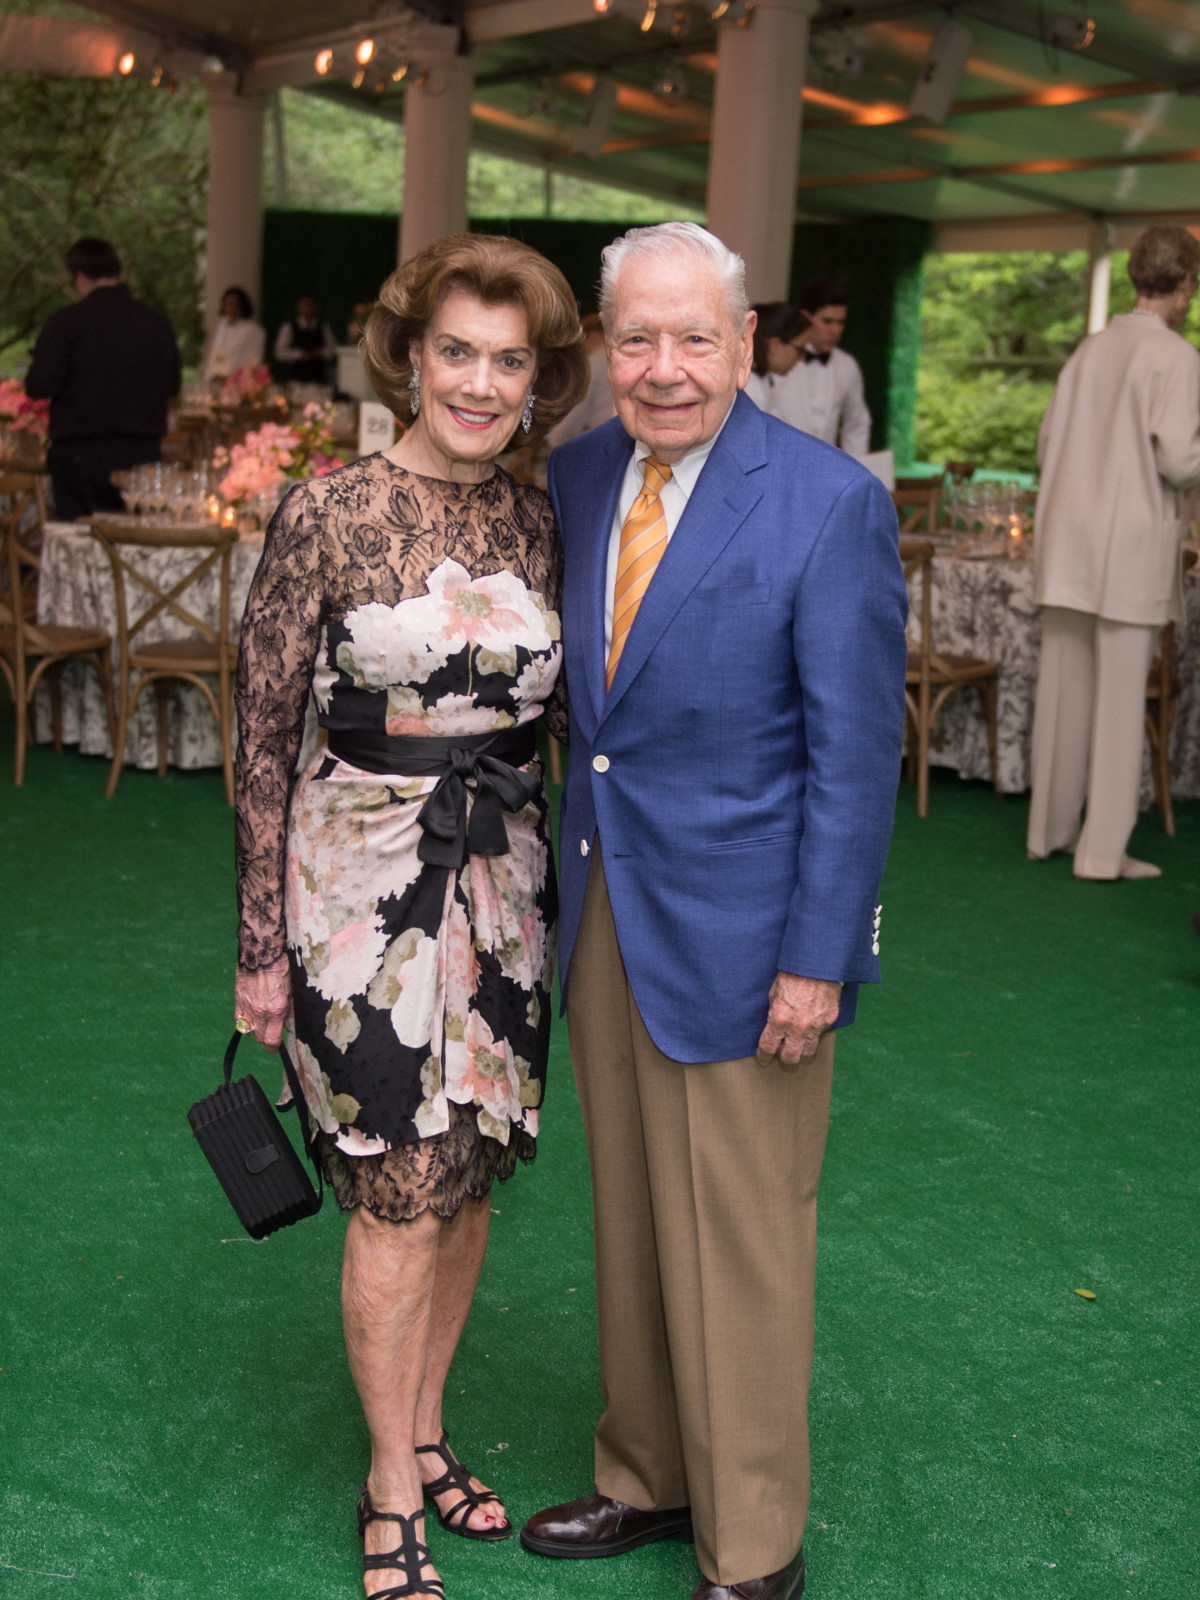 Jeanie Kilroy Wilson Wally Wilson at Bayou Bend Garden Party